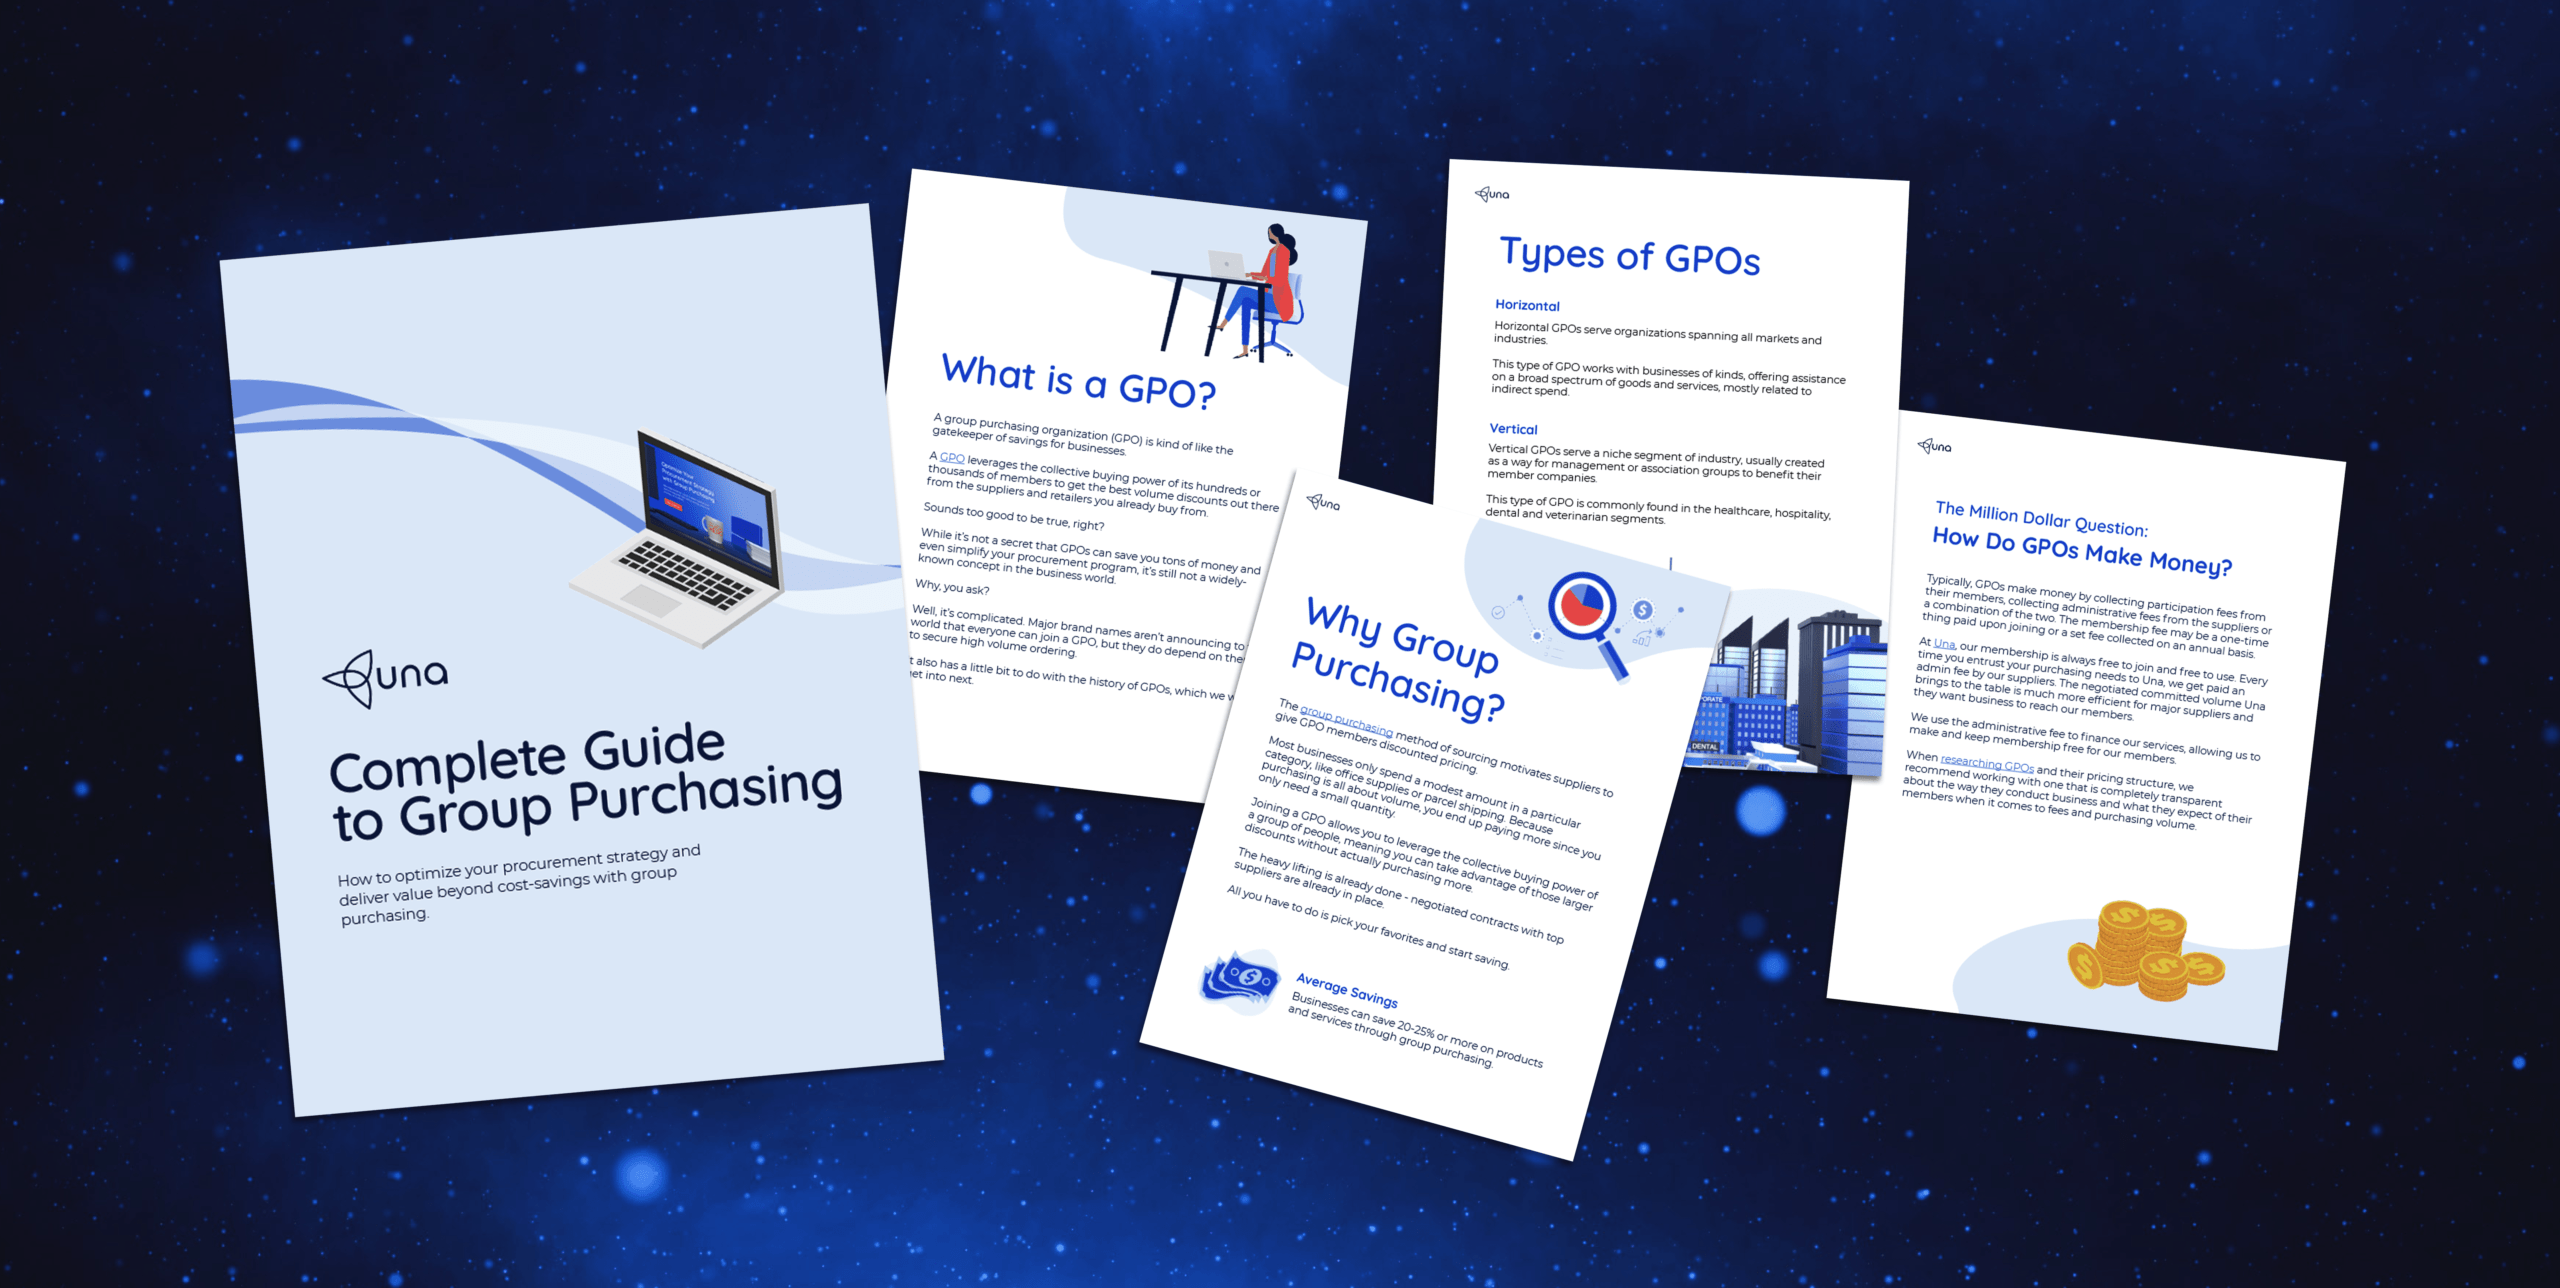 Complete Guide to Group Purchasing